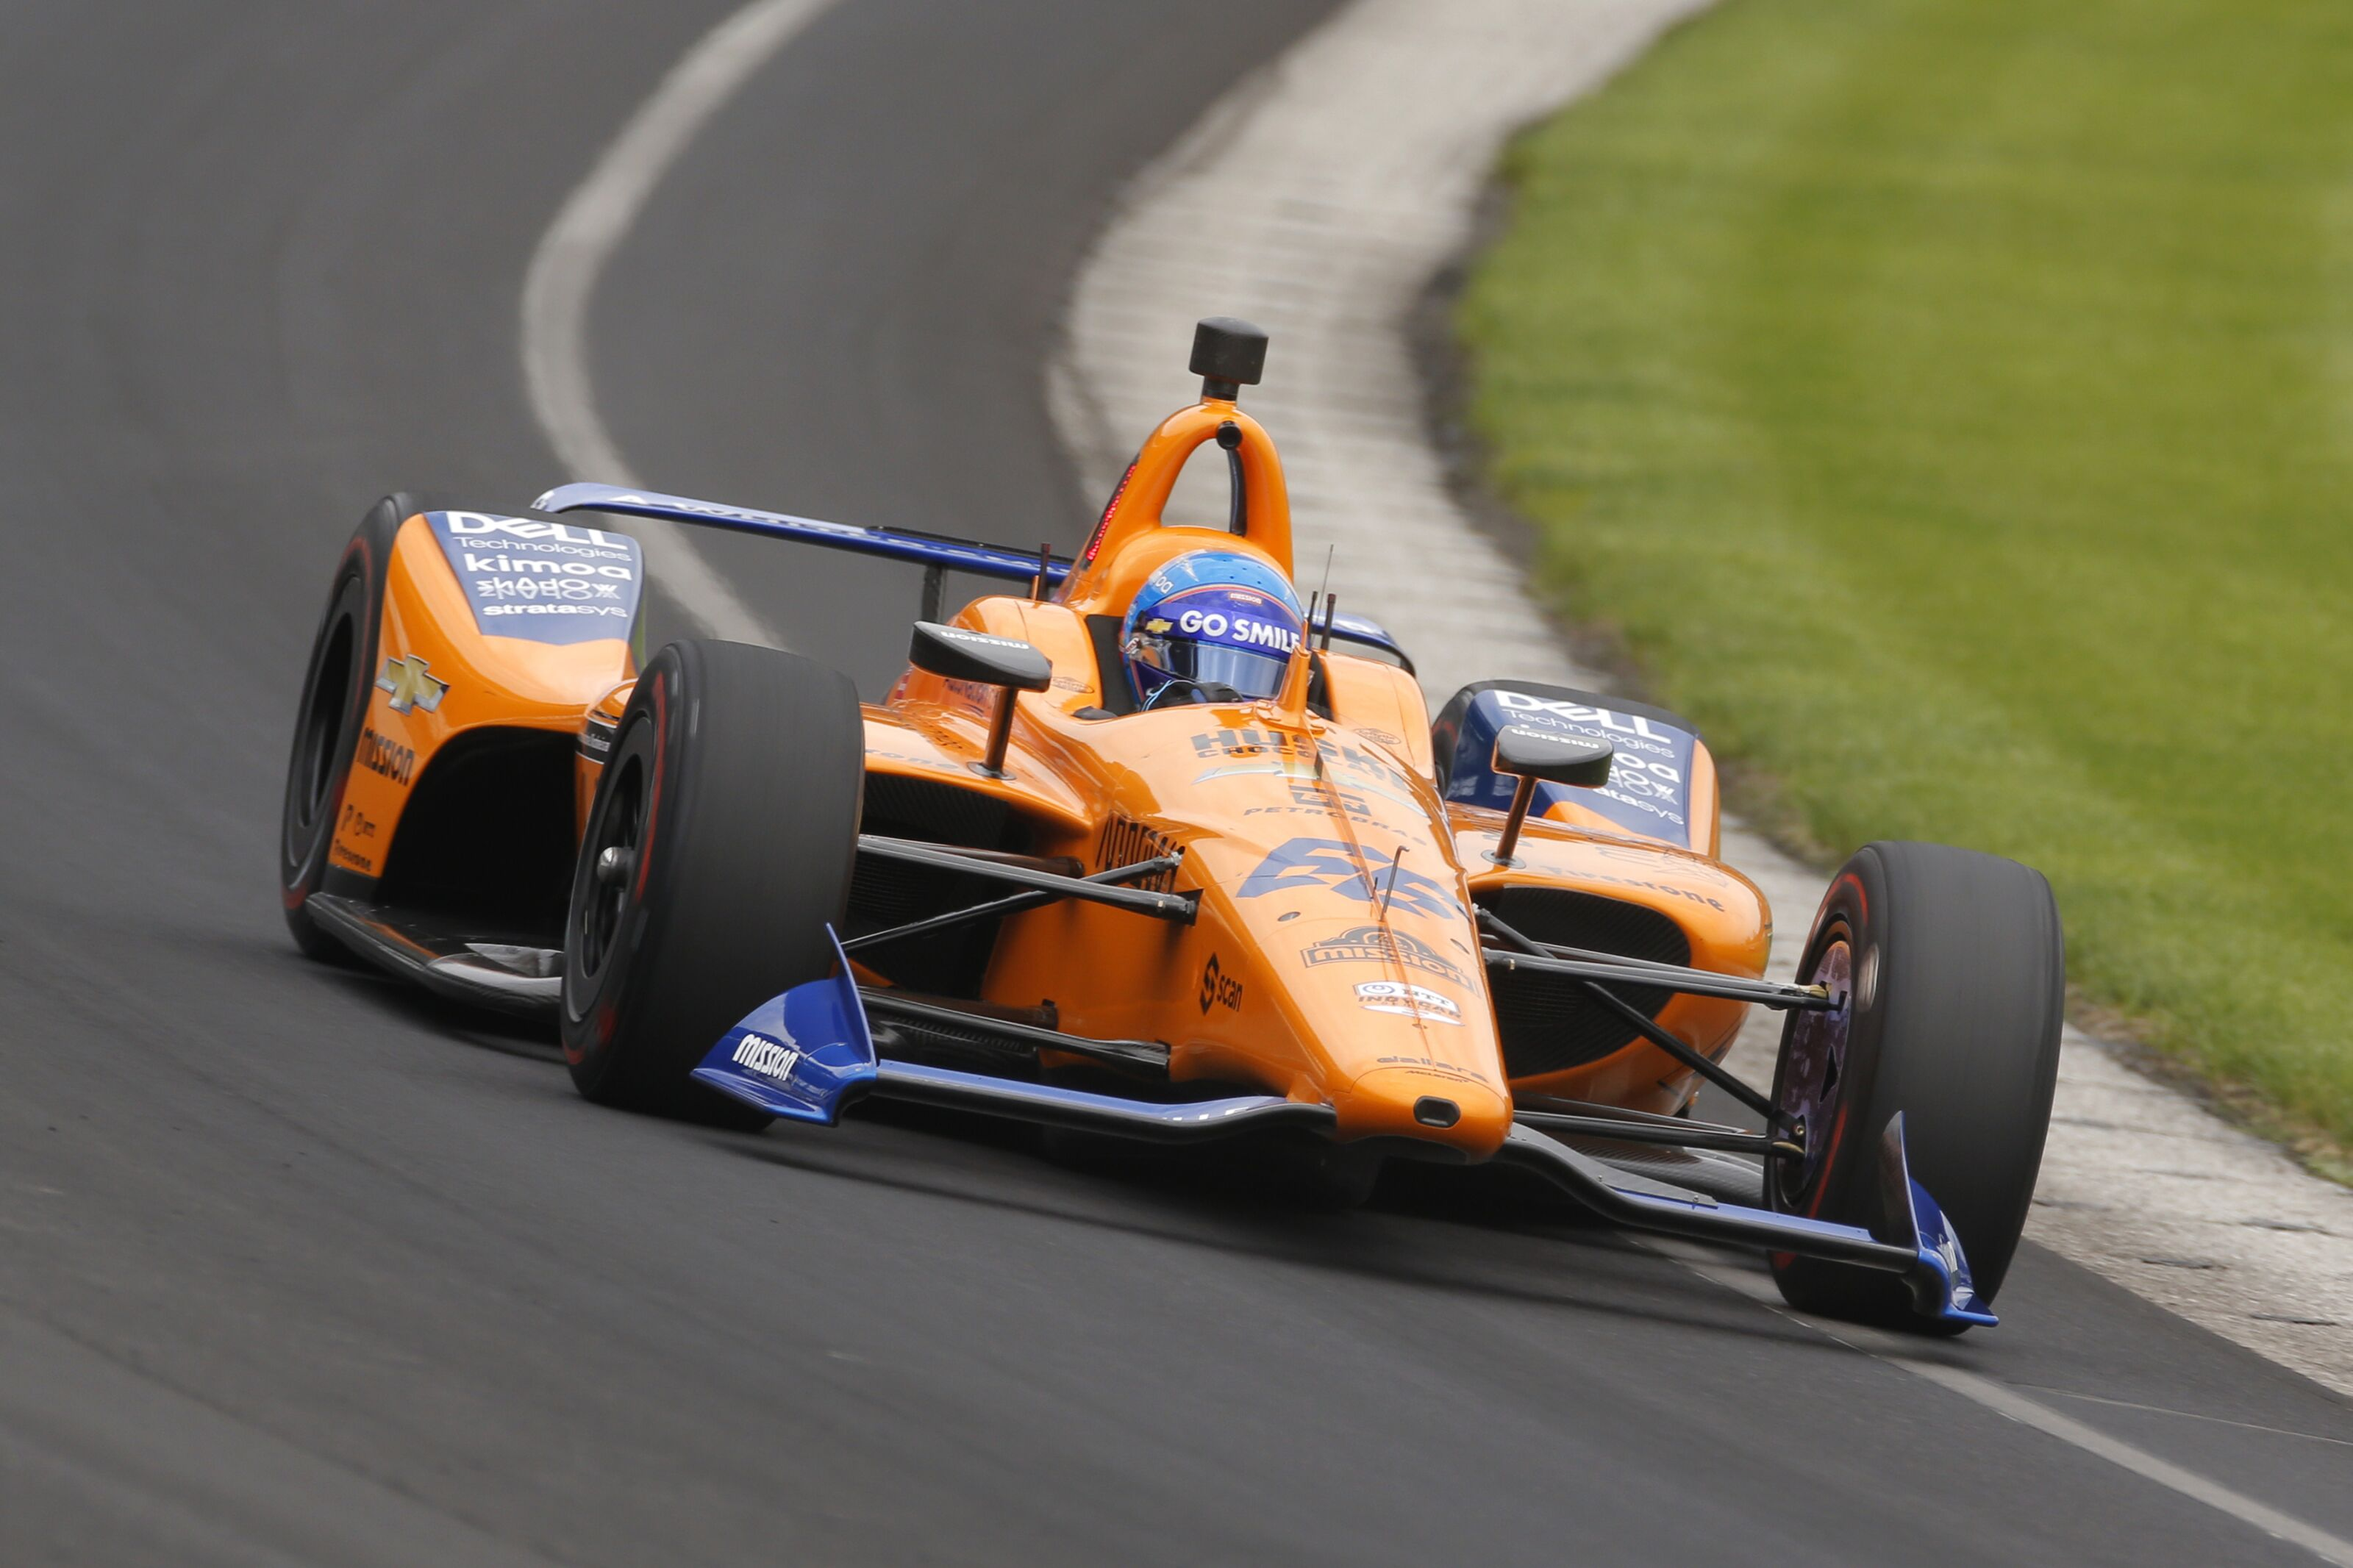 Pole Sitter Pagenaud Leads Monday Indy 500 Practice